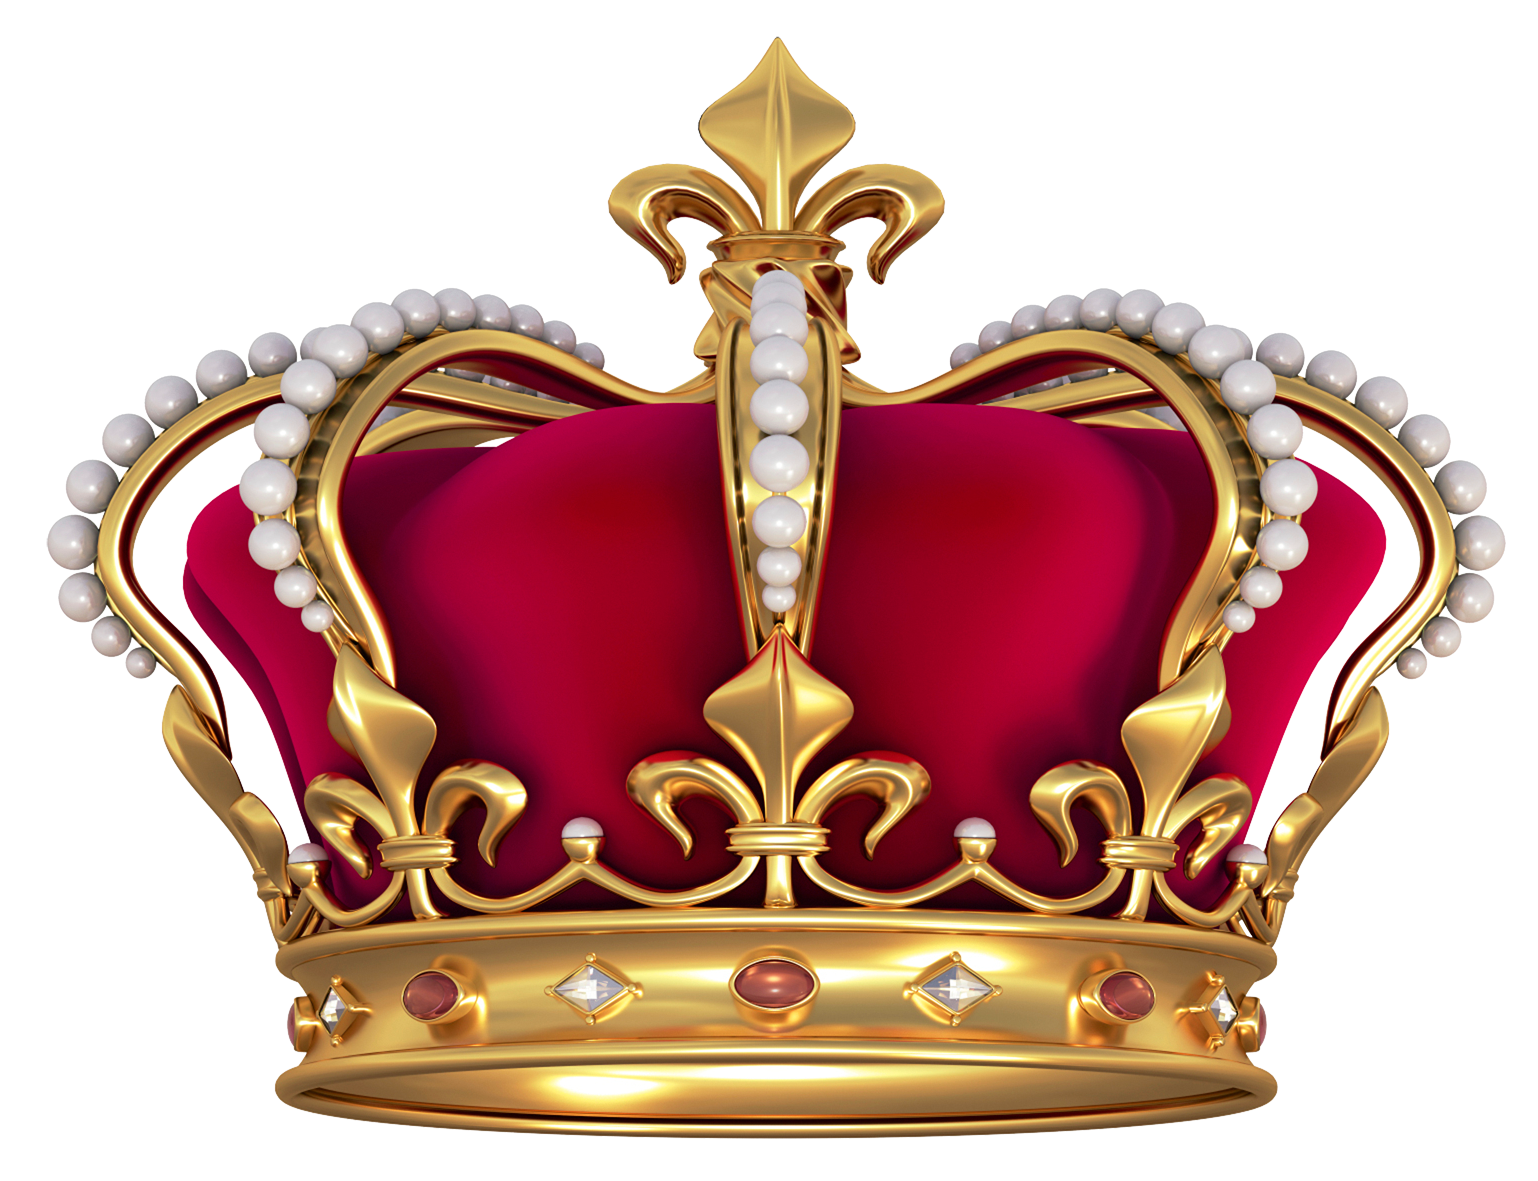 Man crown clipart svg transparent Red Gold Crown with Pearls PNG Clipart Picture | Crafting - Regal ... svg transparent